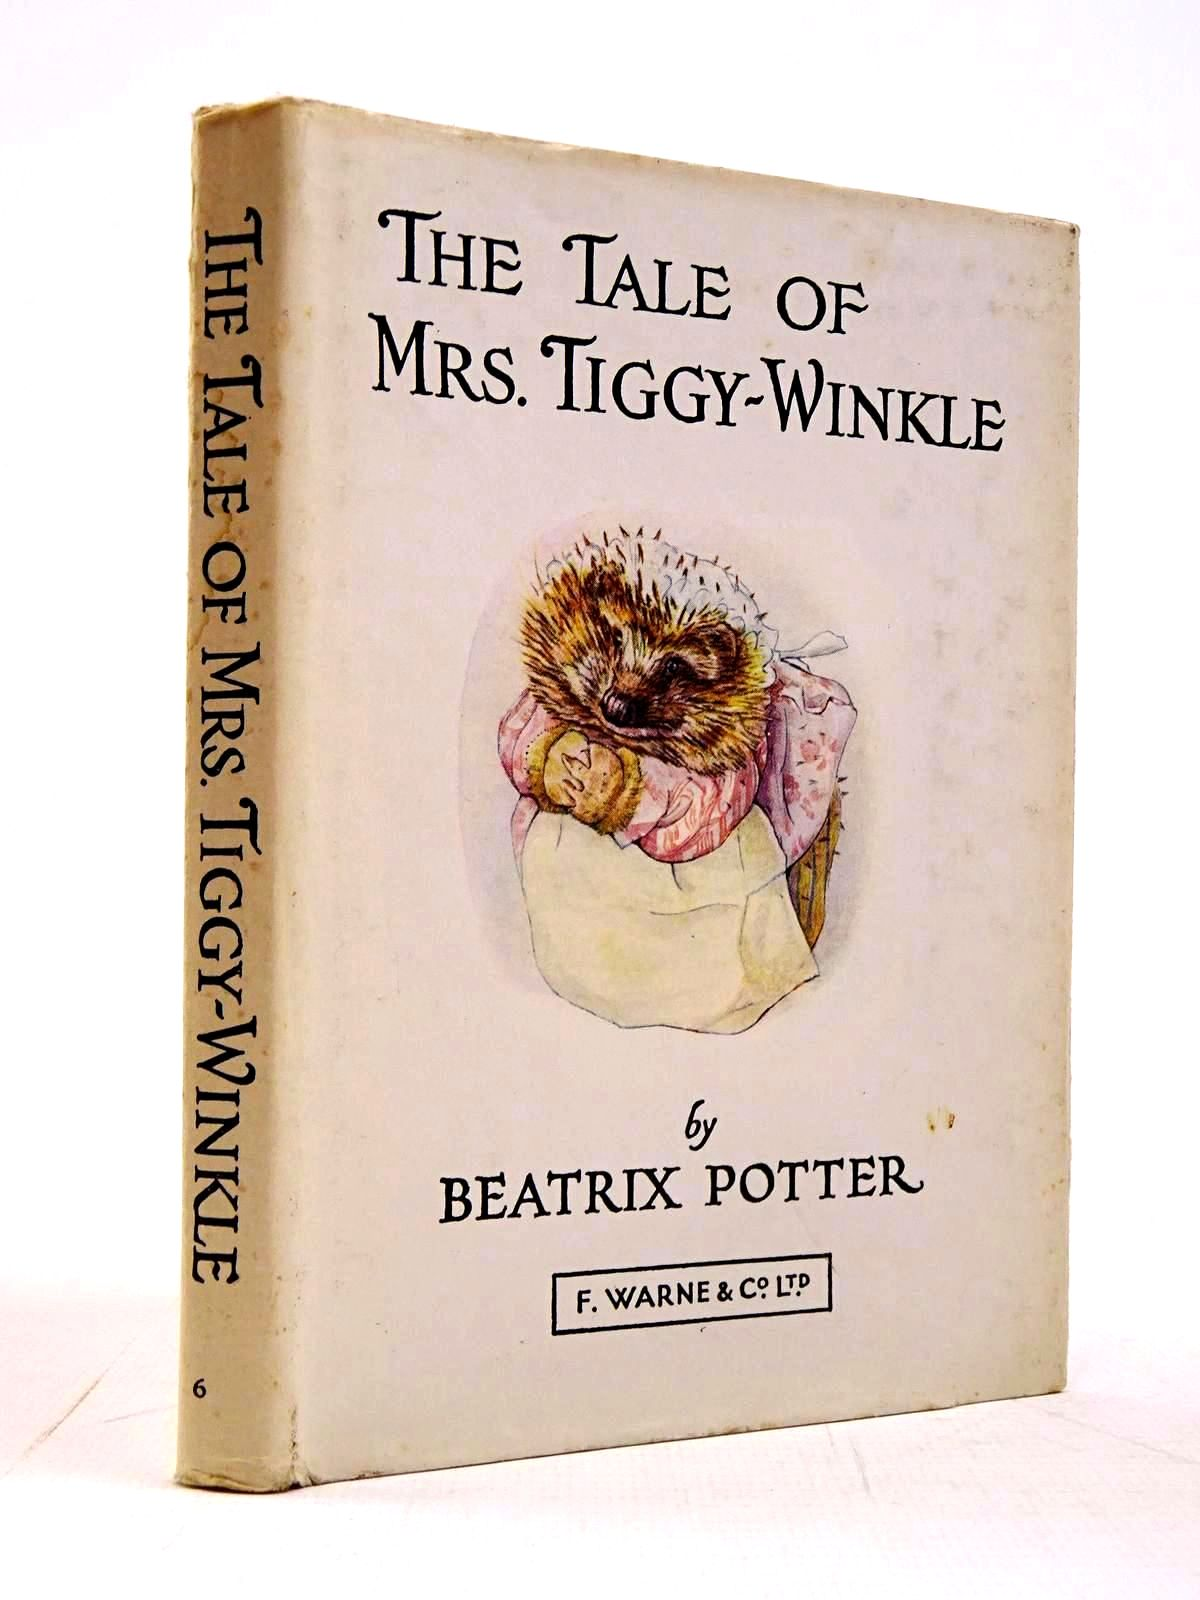 Photo of THE TALE OF MRS. TIGGY-WINKLE written by Potter, Beatrix illustrated by Potter, Beatrix published by Frederick Warne & Co Ltd. (STOCK CODE: 2130658)  for sale by Stella & Rose's Books